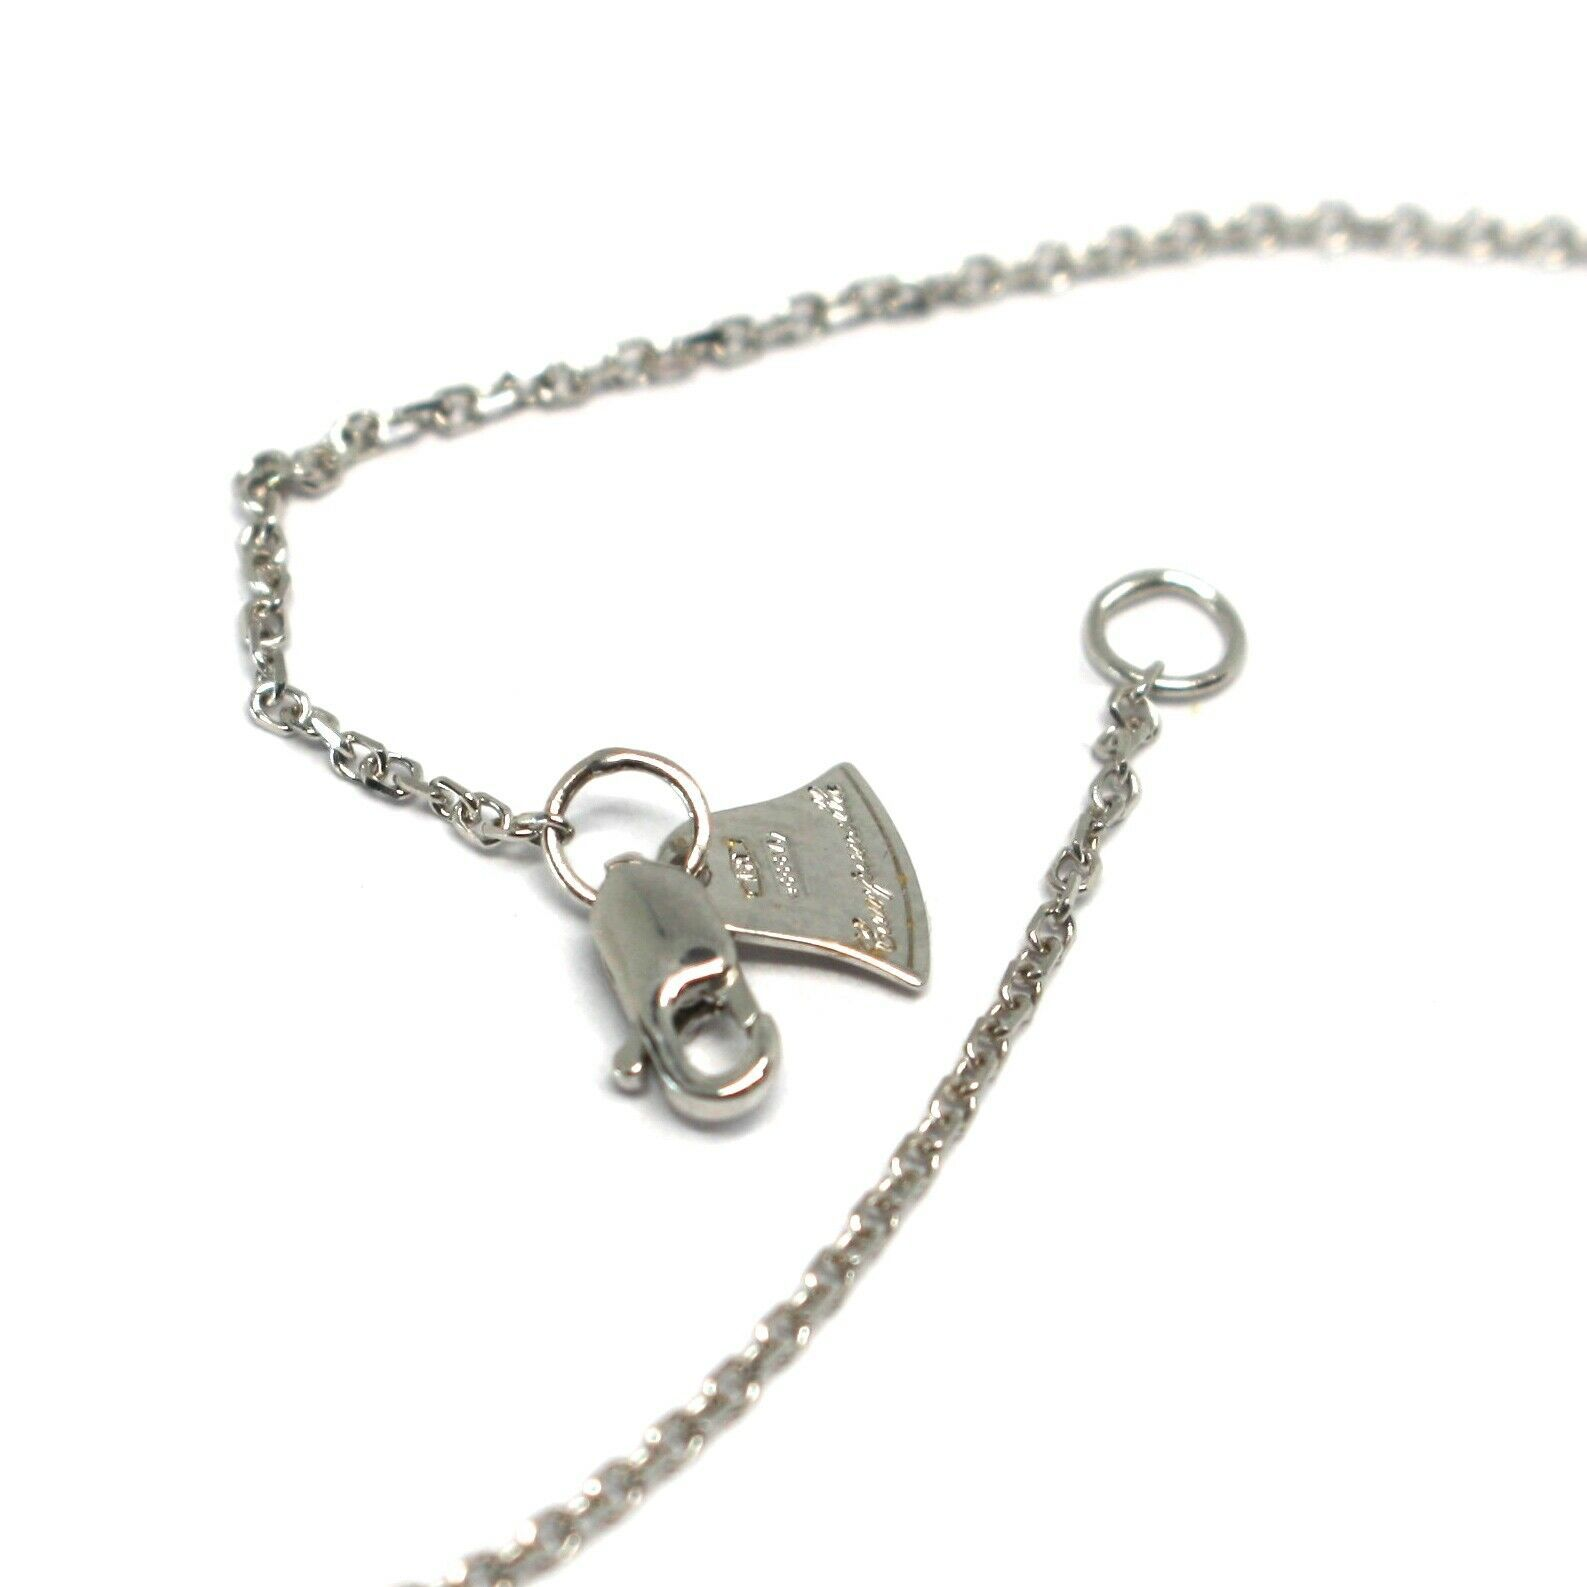 Necklace White Gold 18k 750, Chain Rolo ' , Symbols Infinity, Zircon Cubic image 3